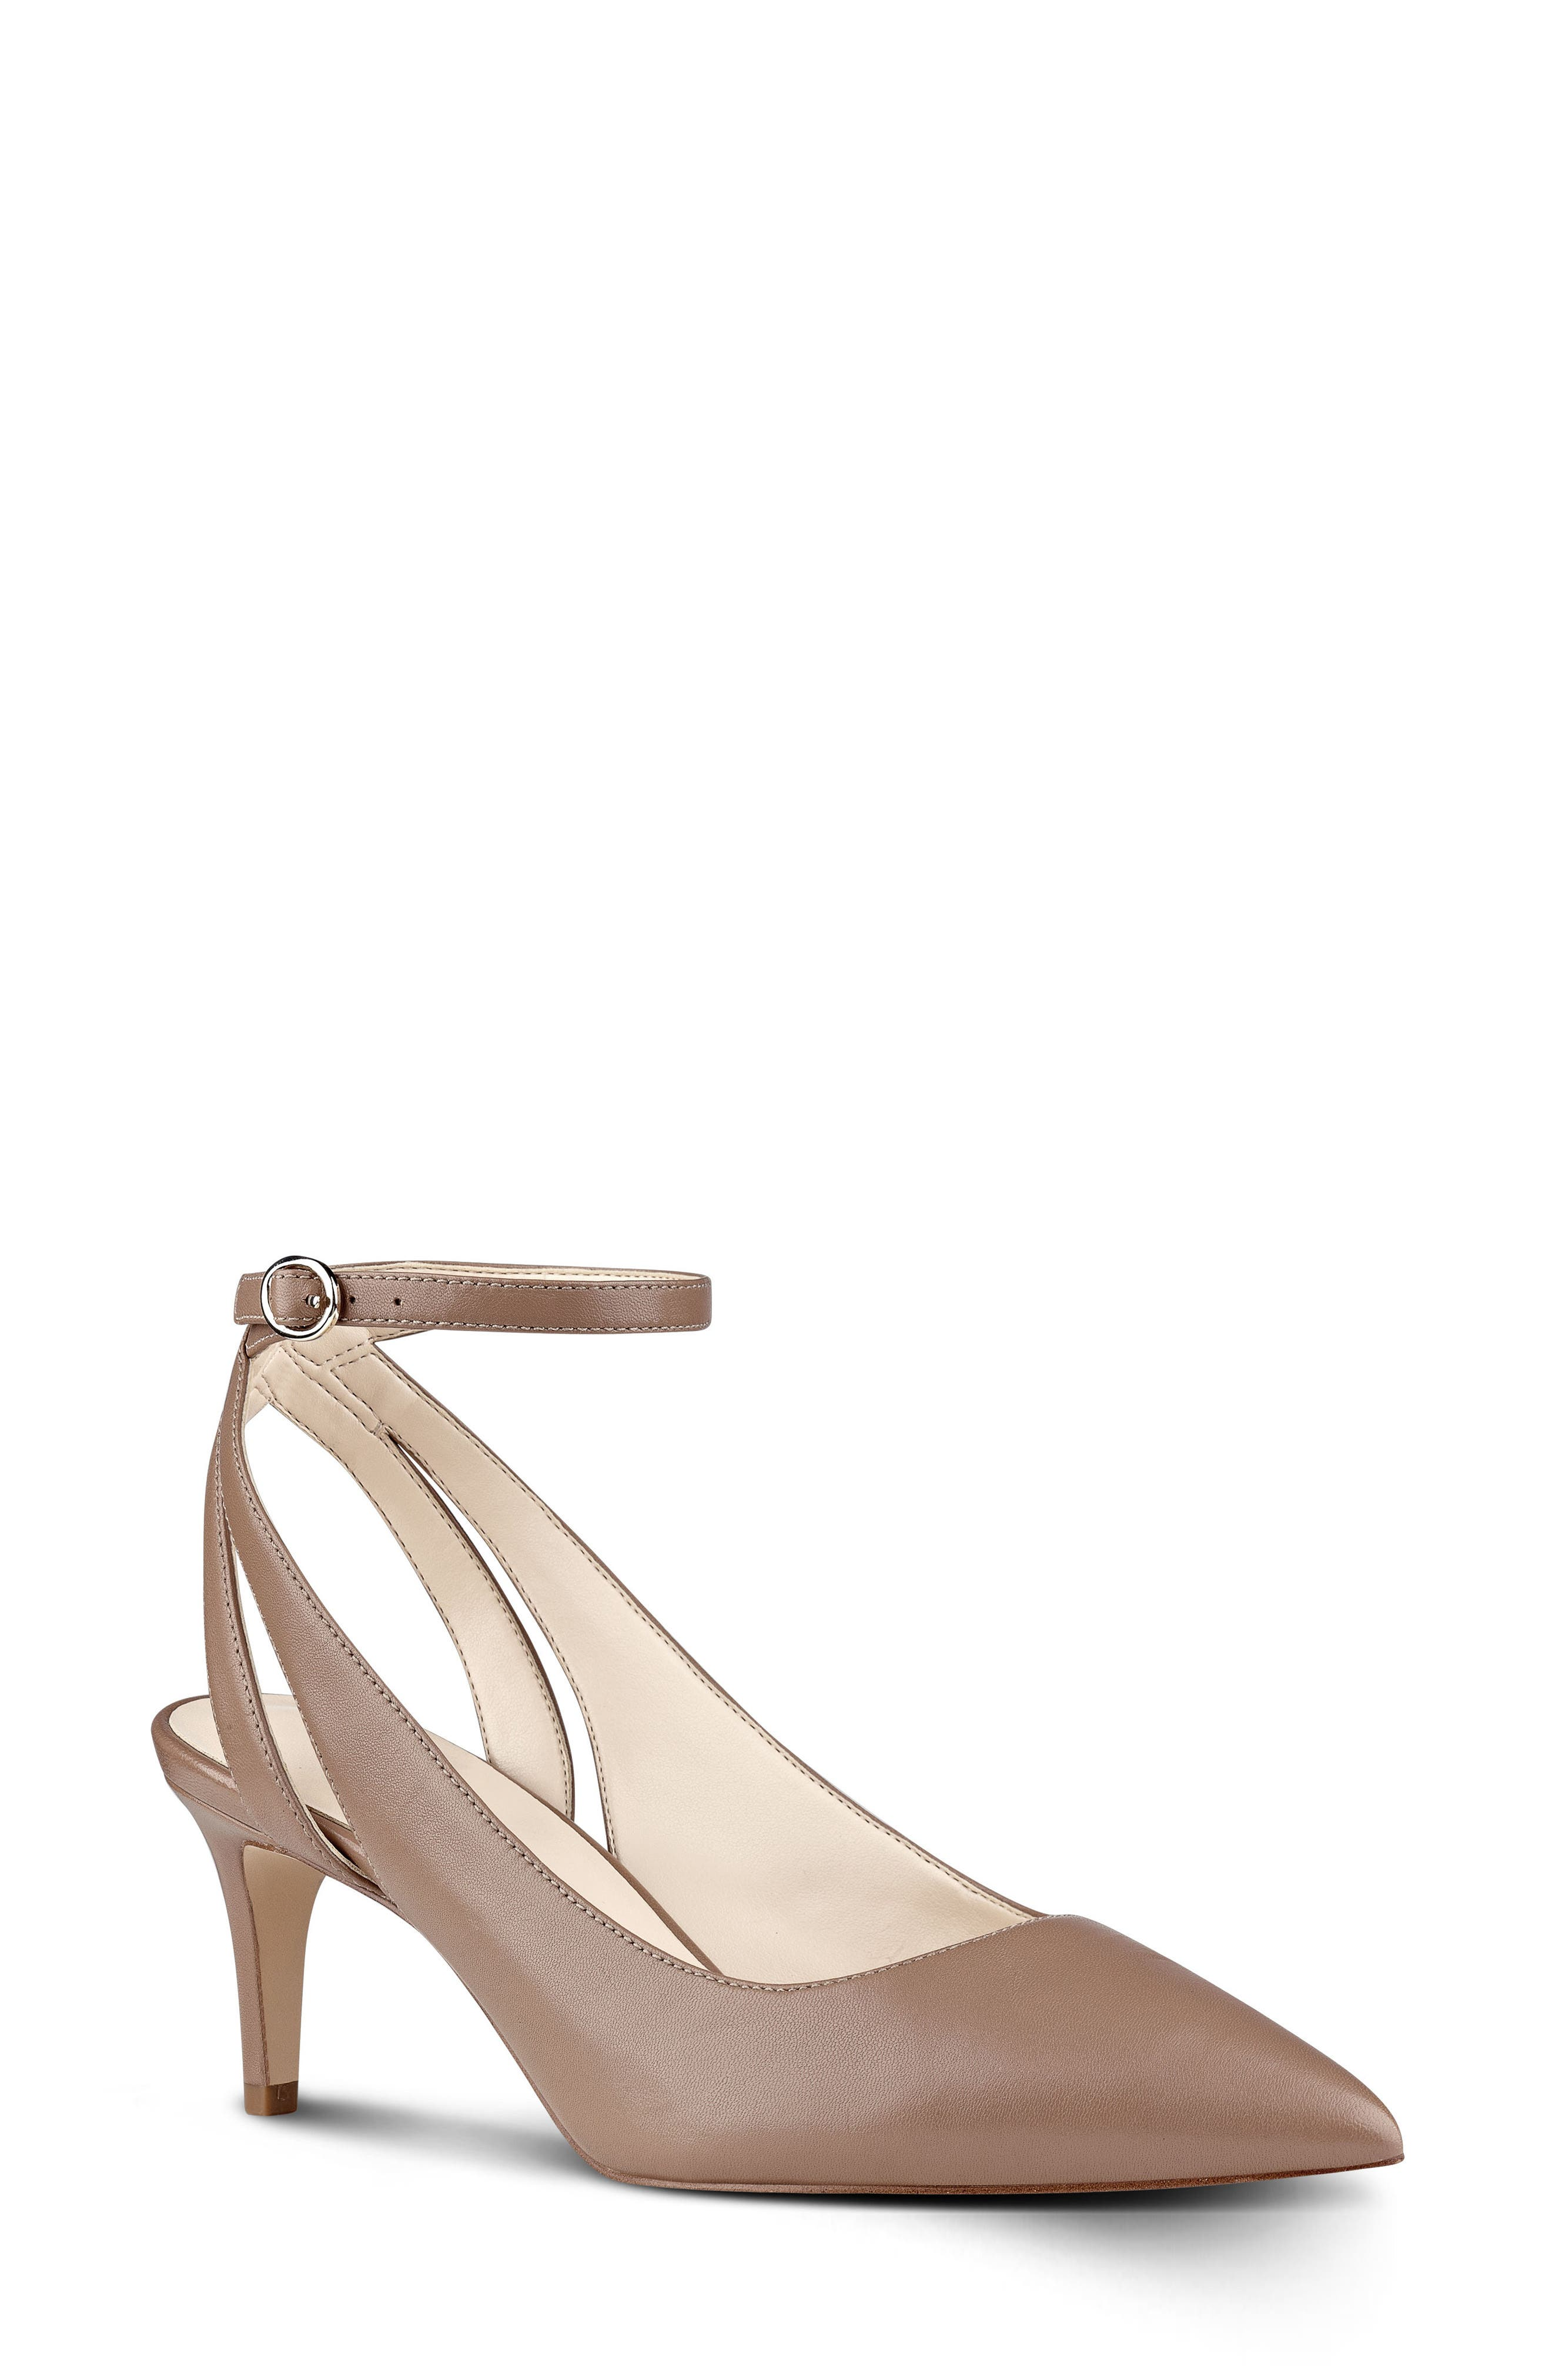 Alternate Image 1 Selected - Nine West Shawn Ankle Strap Pump